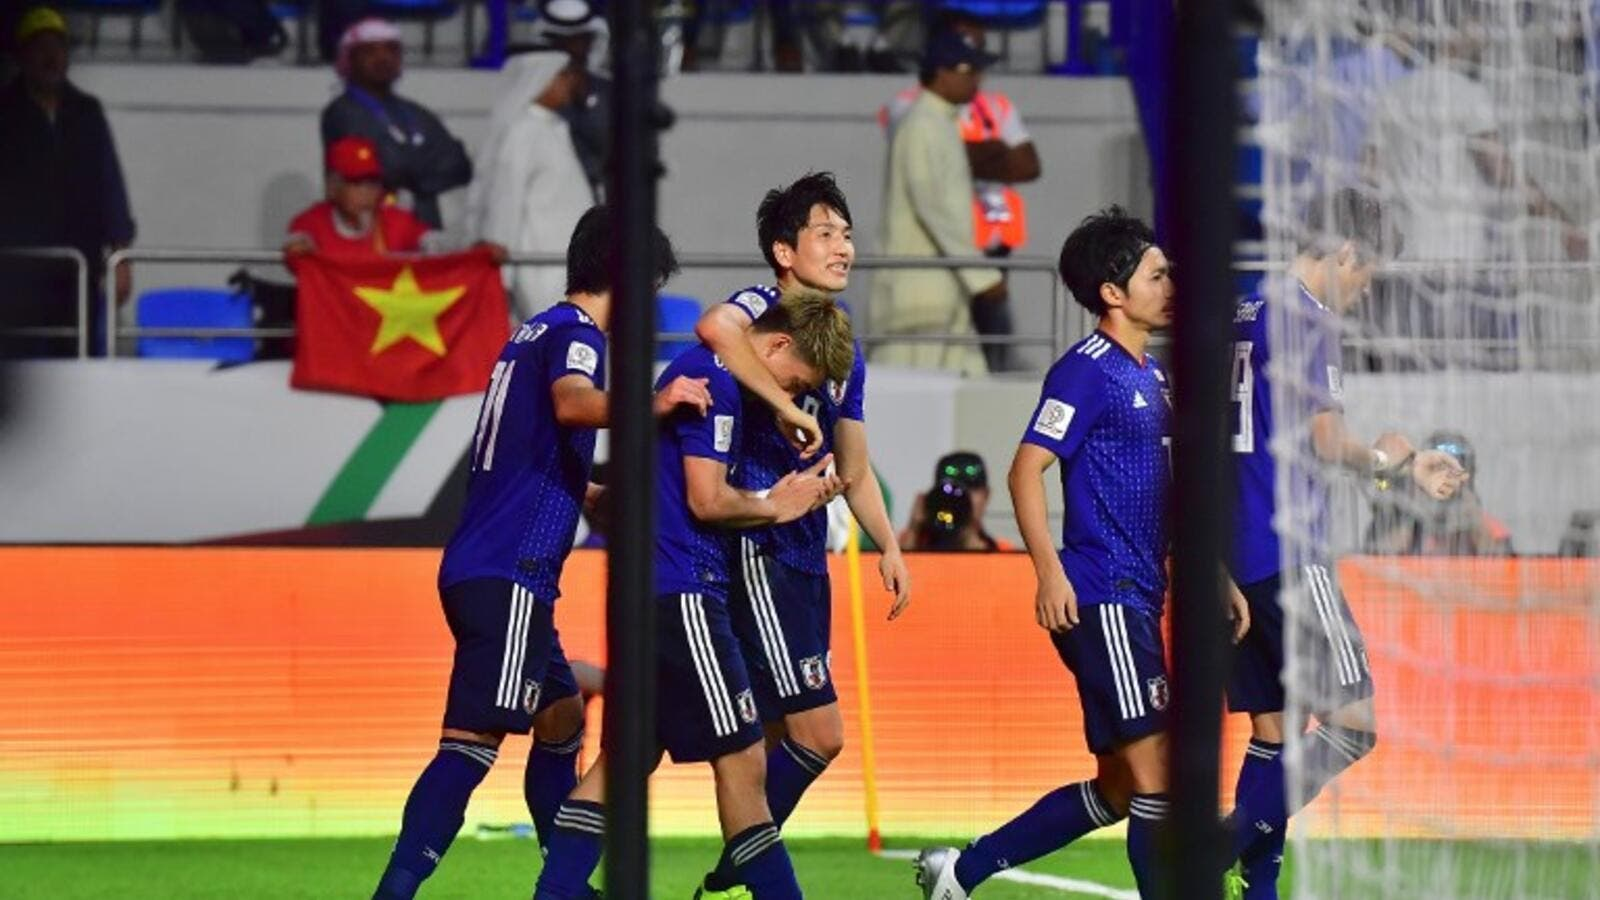 Japan's players celebrate their goal during the 2019 AFC Asian Cup quarter-final football match between Vietnam and Japan at the Al-Maktoum Stadium in Dubai on January 24, 2019.